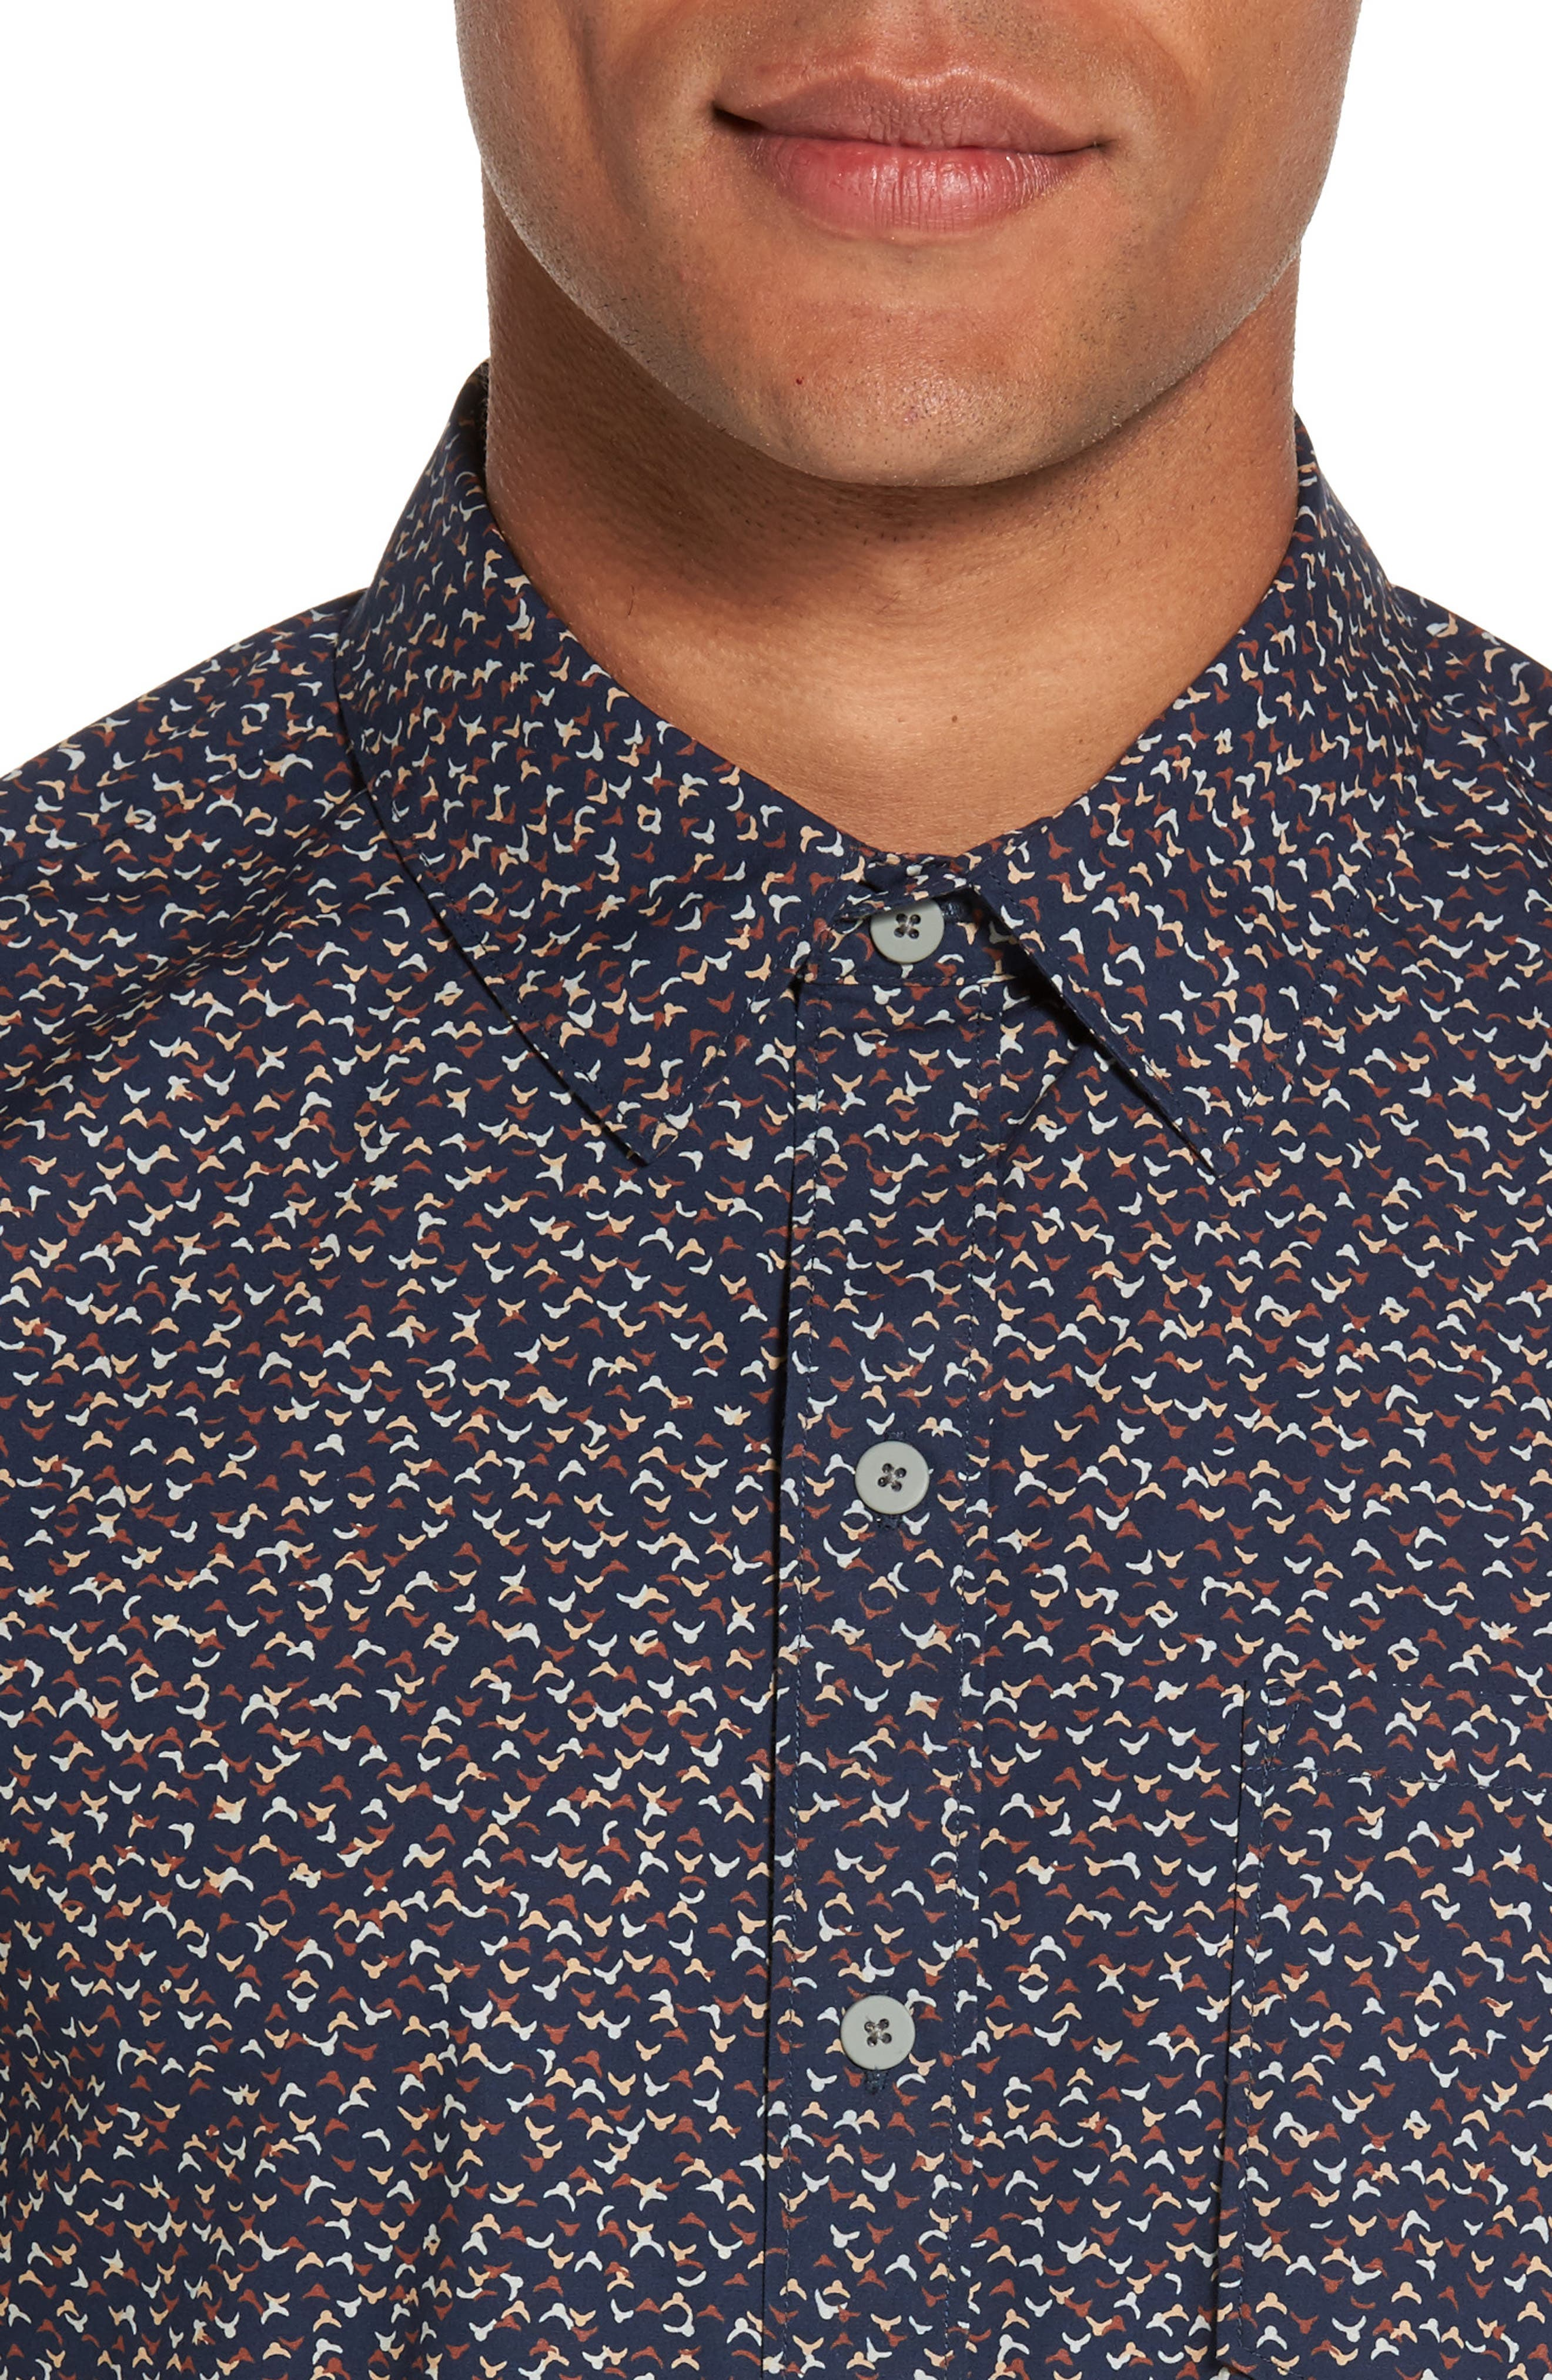 Becker Patterned Woven Shirt,                             Alternate thumbnail 4, color,                             400